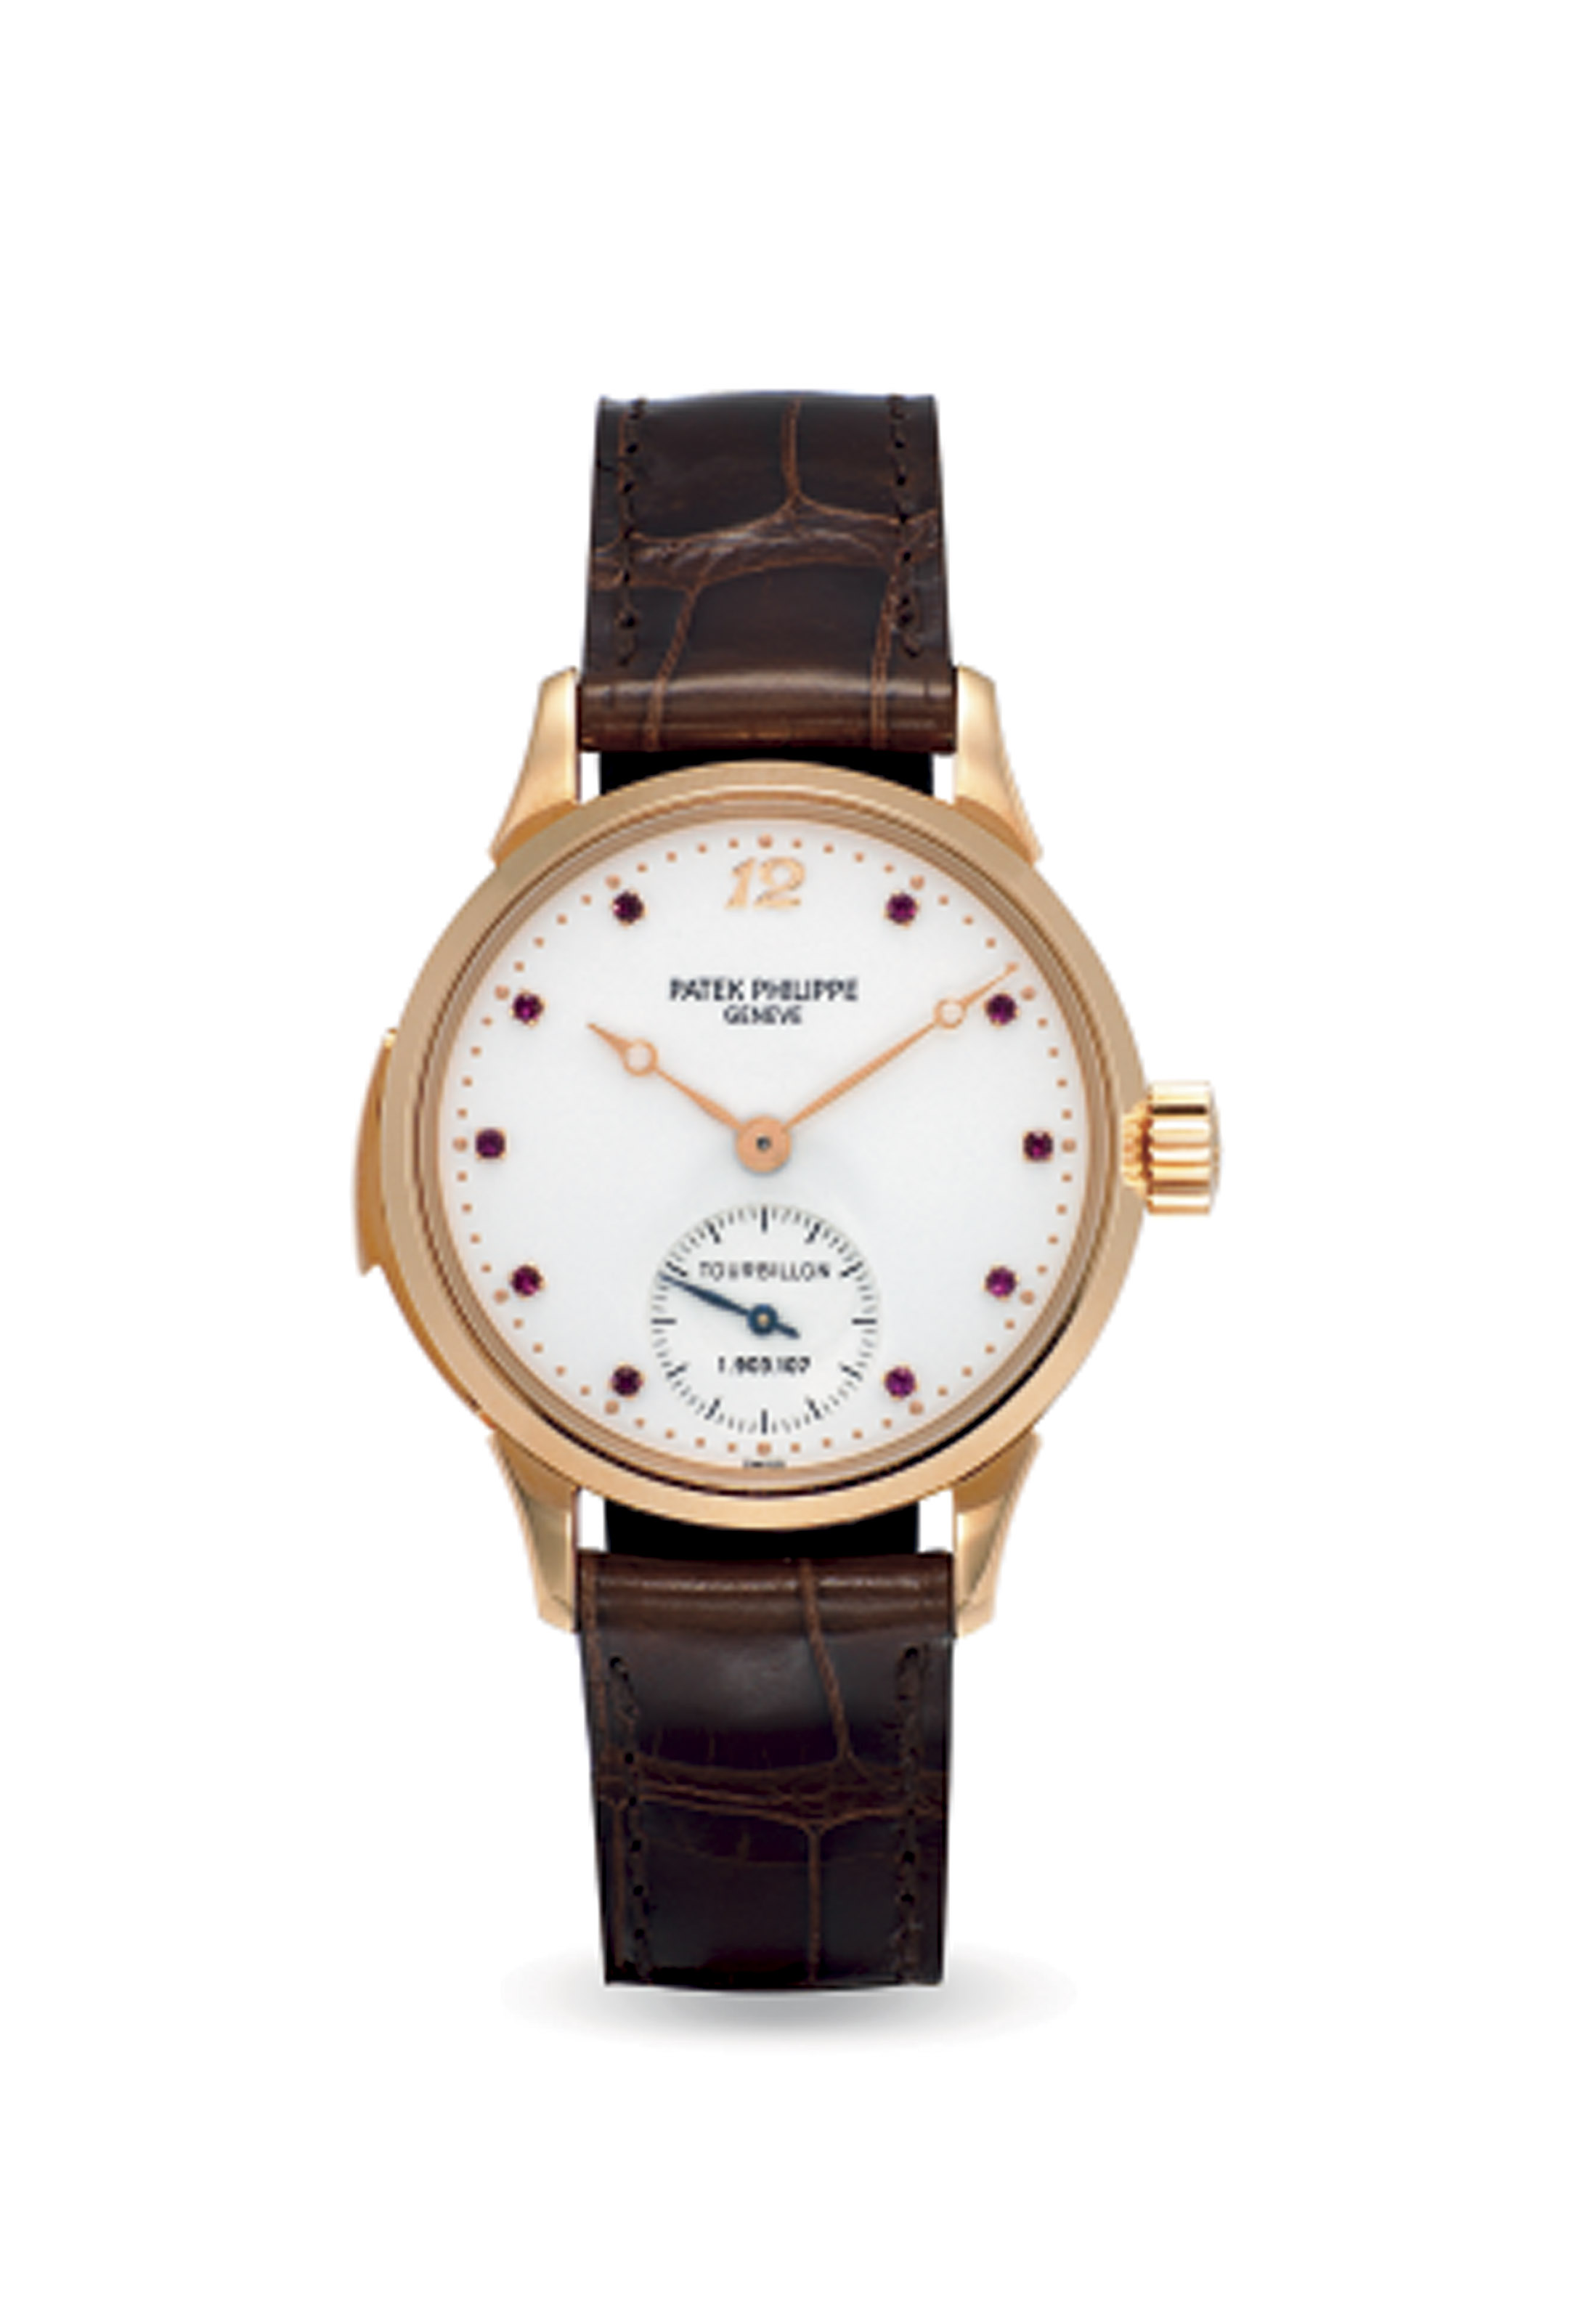 PATEK PHILIPPE. AN EXCEPTIONAL, VERY RARE AND POSSIBLY UNIQUE 18K PINK GOLD MINUTE REPEATING TOURBILLON WRISTWATCH WITH RARE RUBY-SET DIAL, ORIGINAL CERTIFICATE, ADDITIONAL CASE BACK AND PORTFOLIO PHOTOGRAPHS